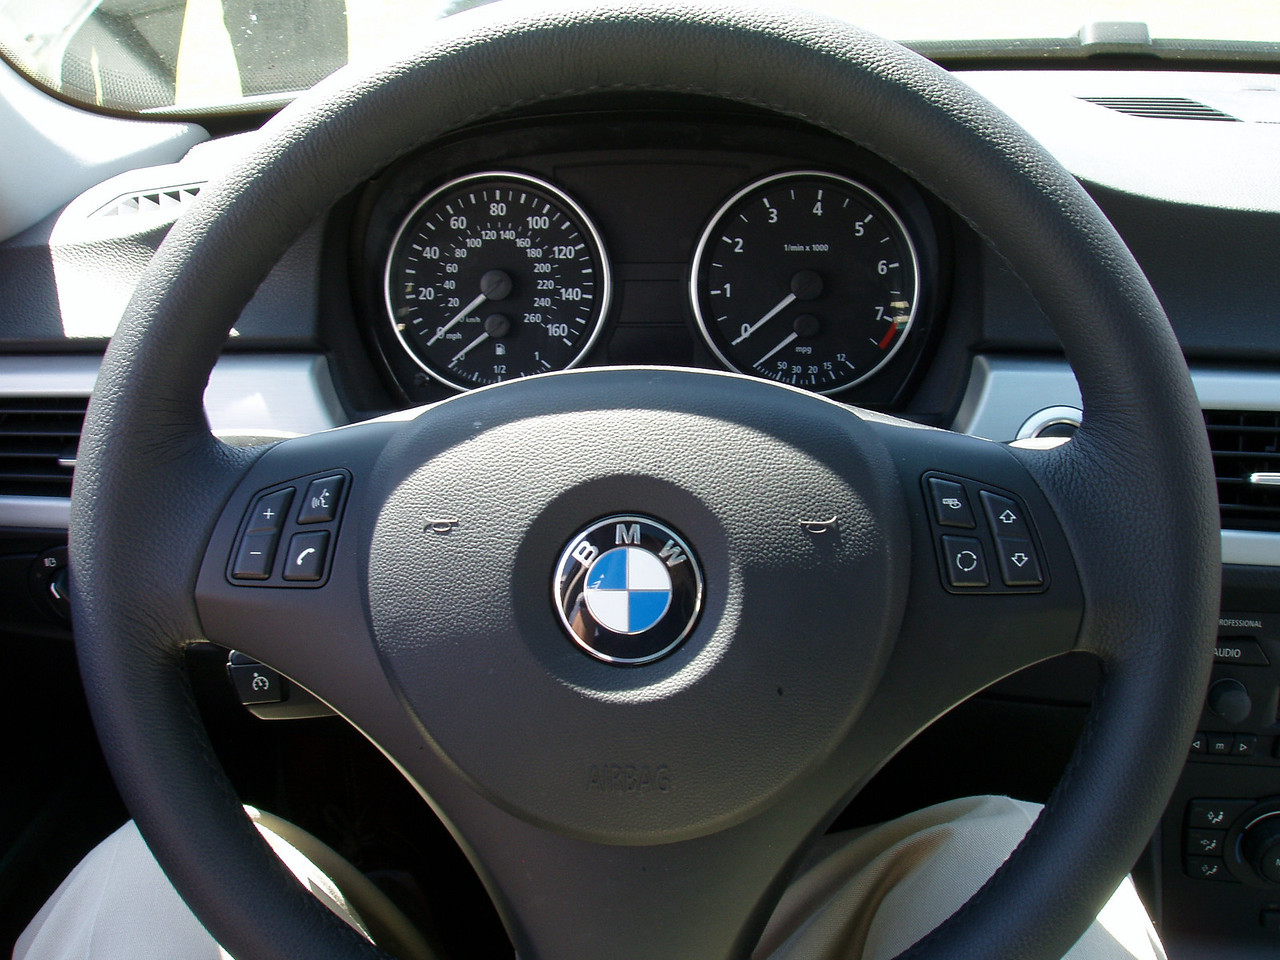 2006 330i Steering Wheel and guages